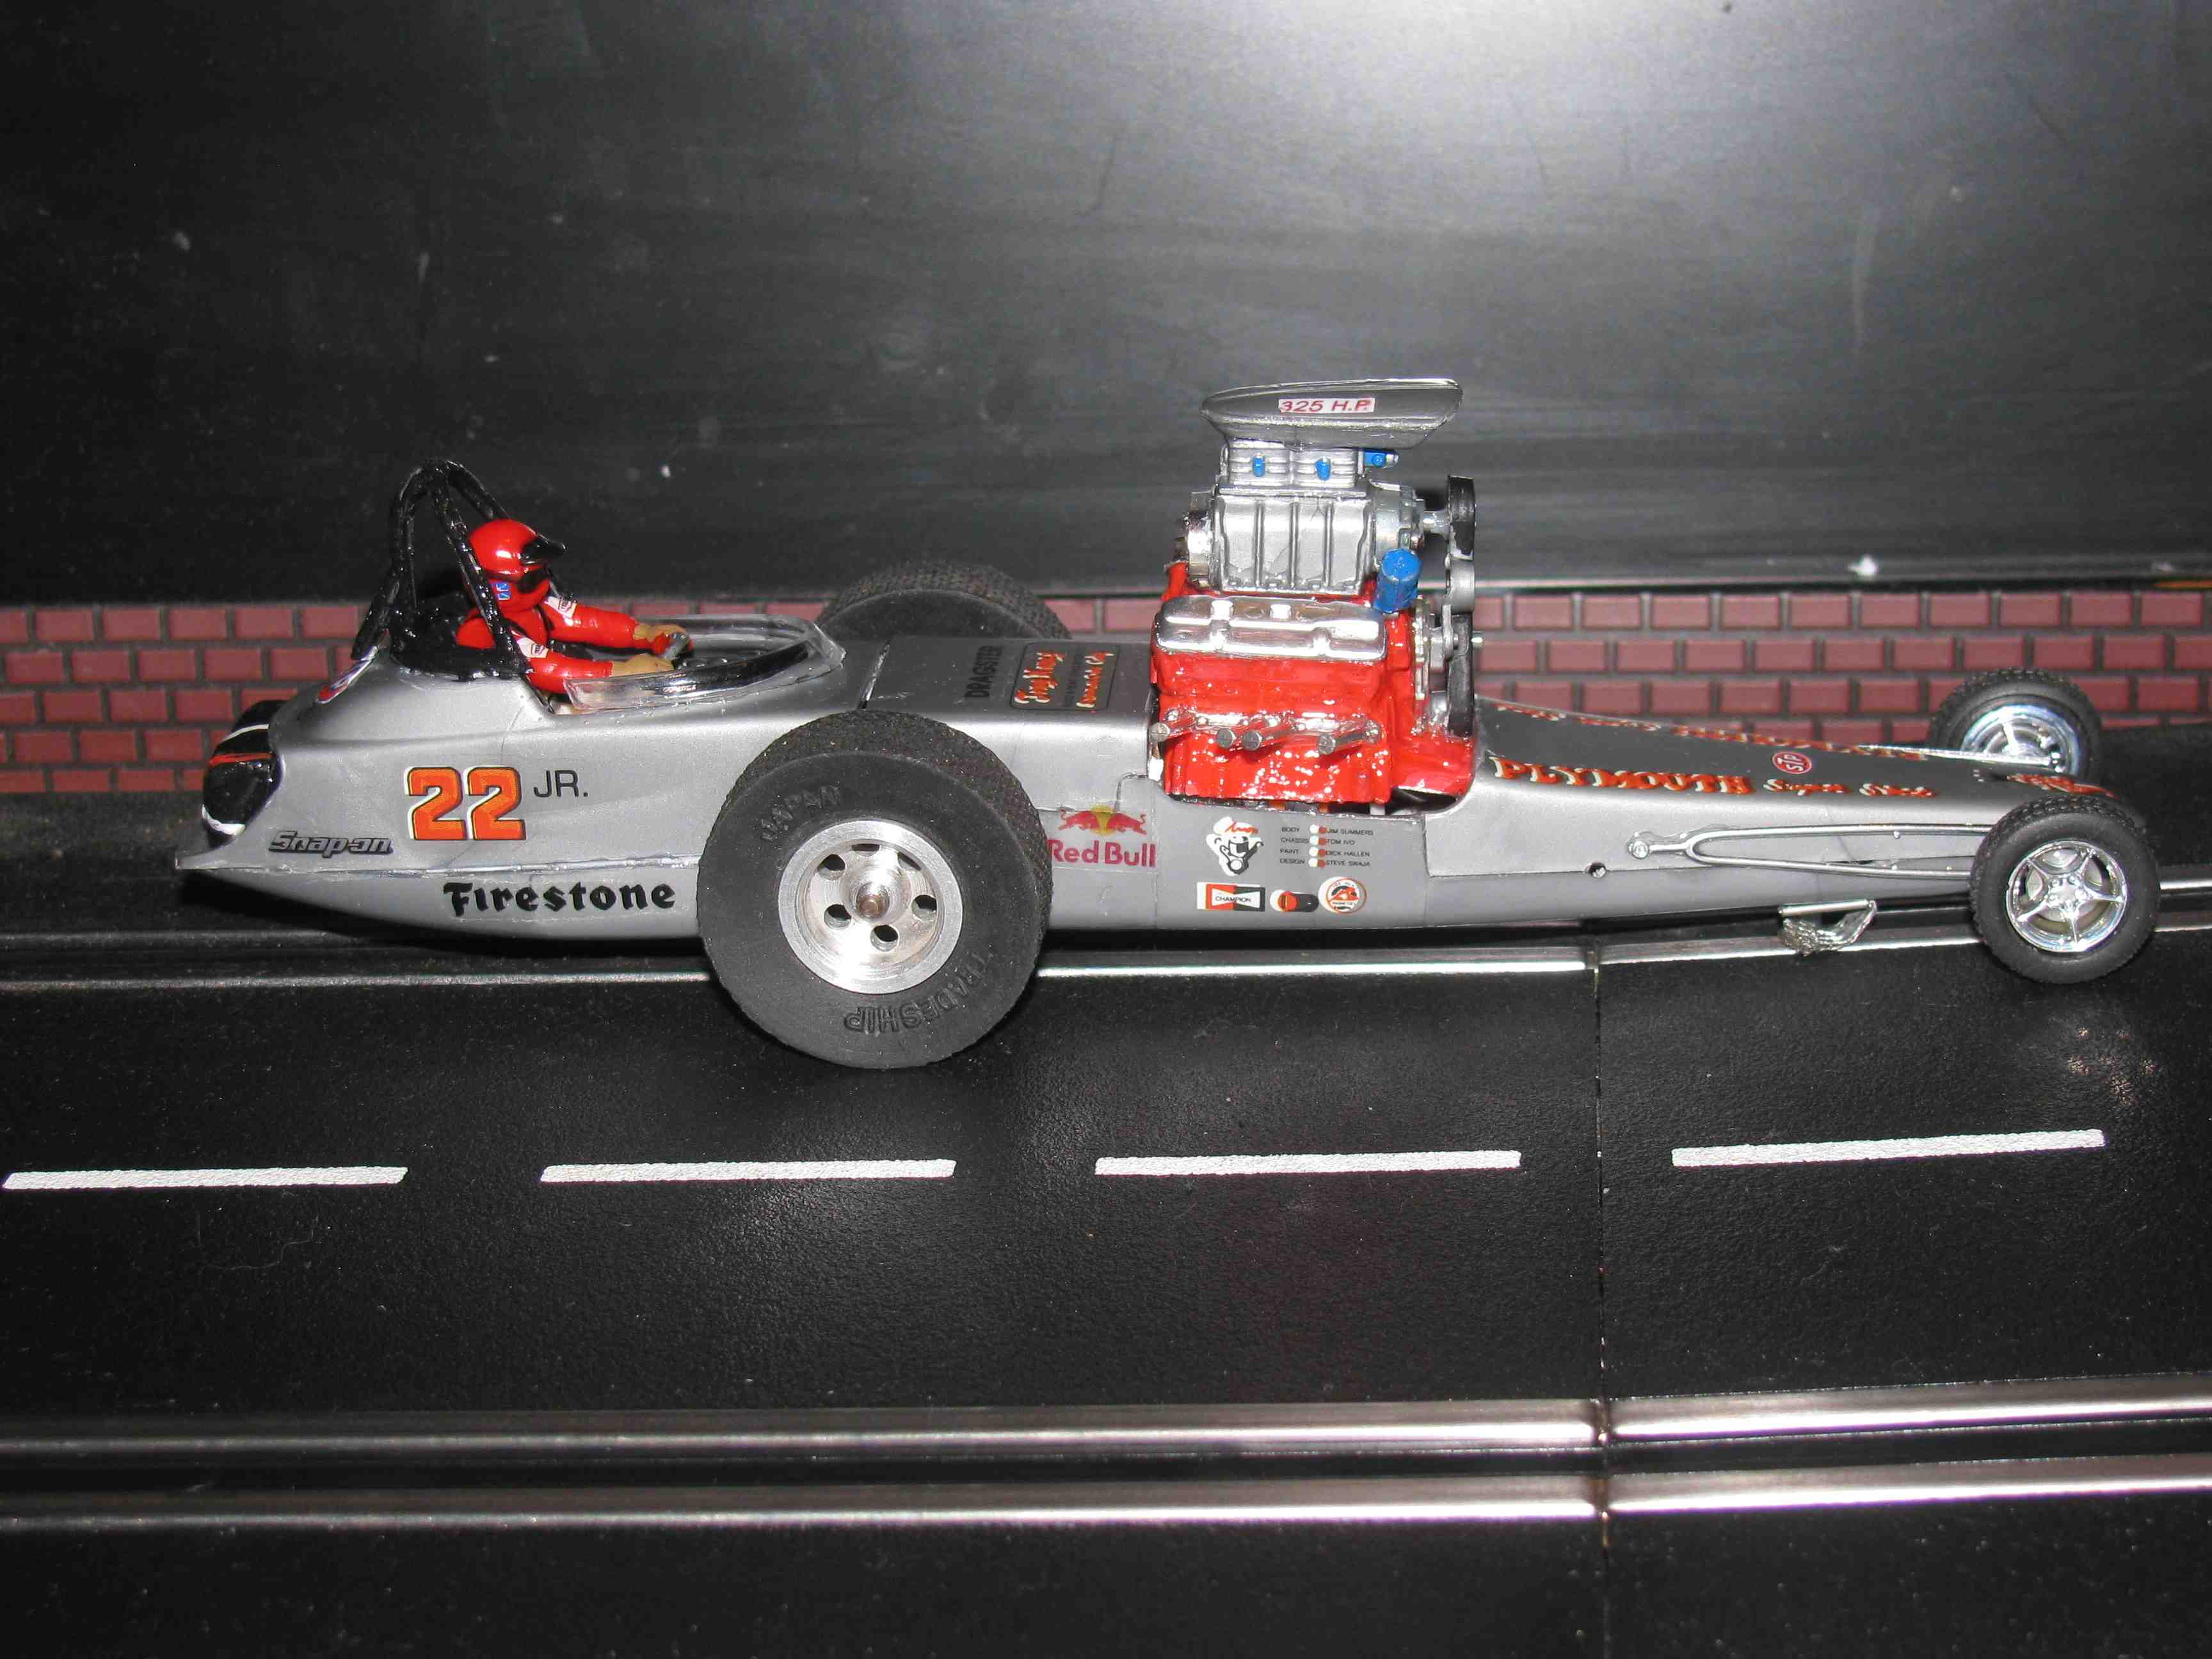 * SOLD * Vintage Revell Tony Nancy 22JR Dragster Slot Car 1/32-1/24 Scale